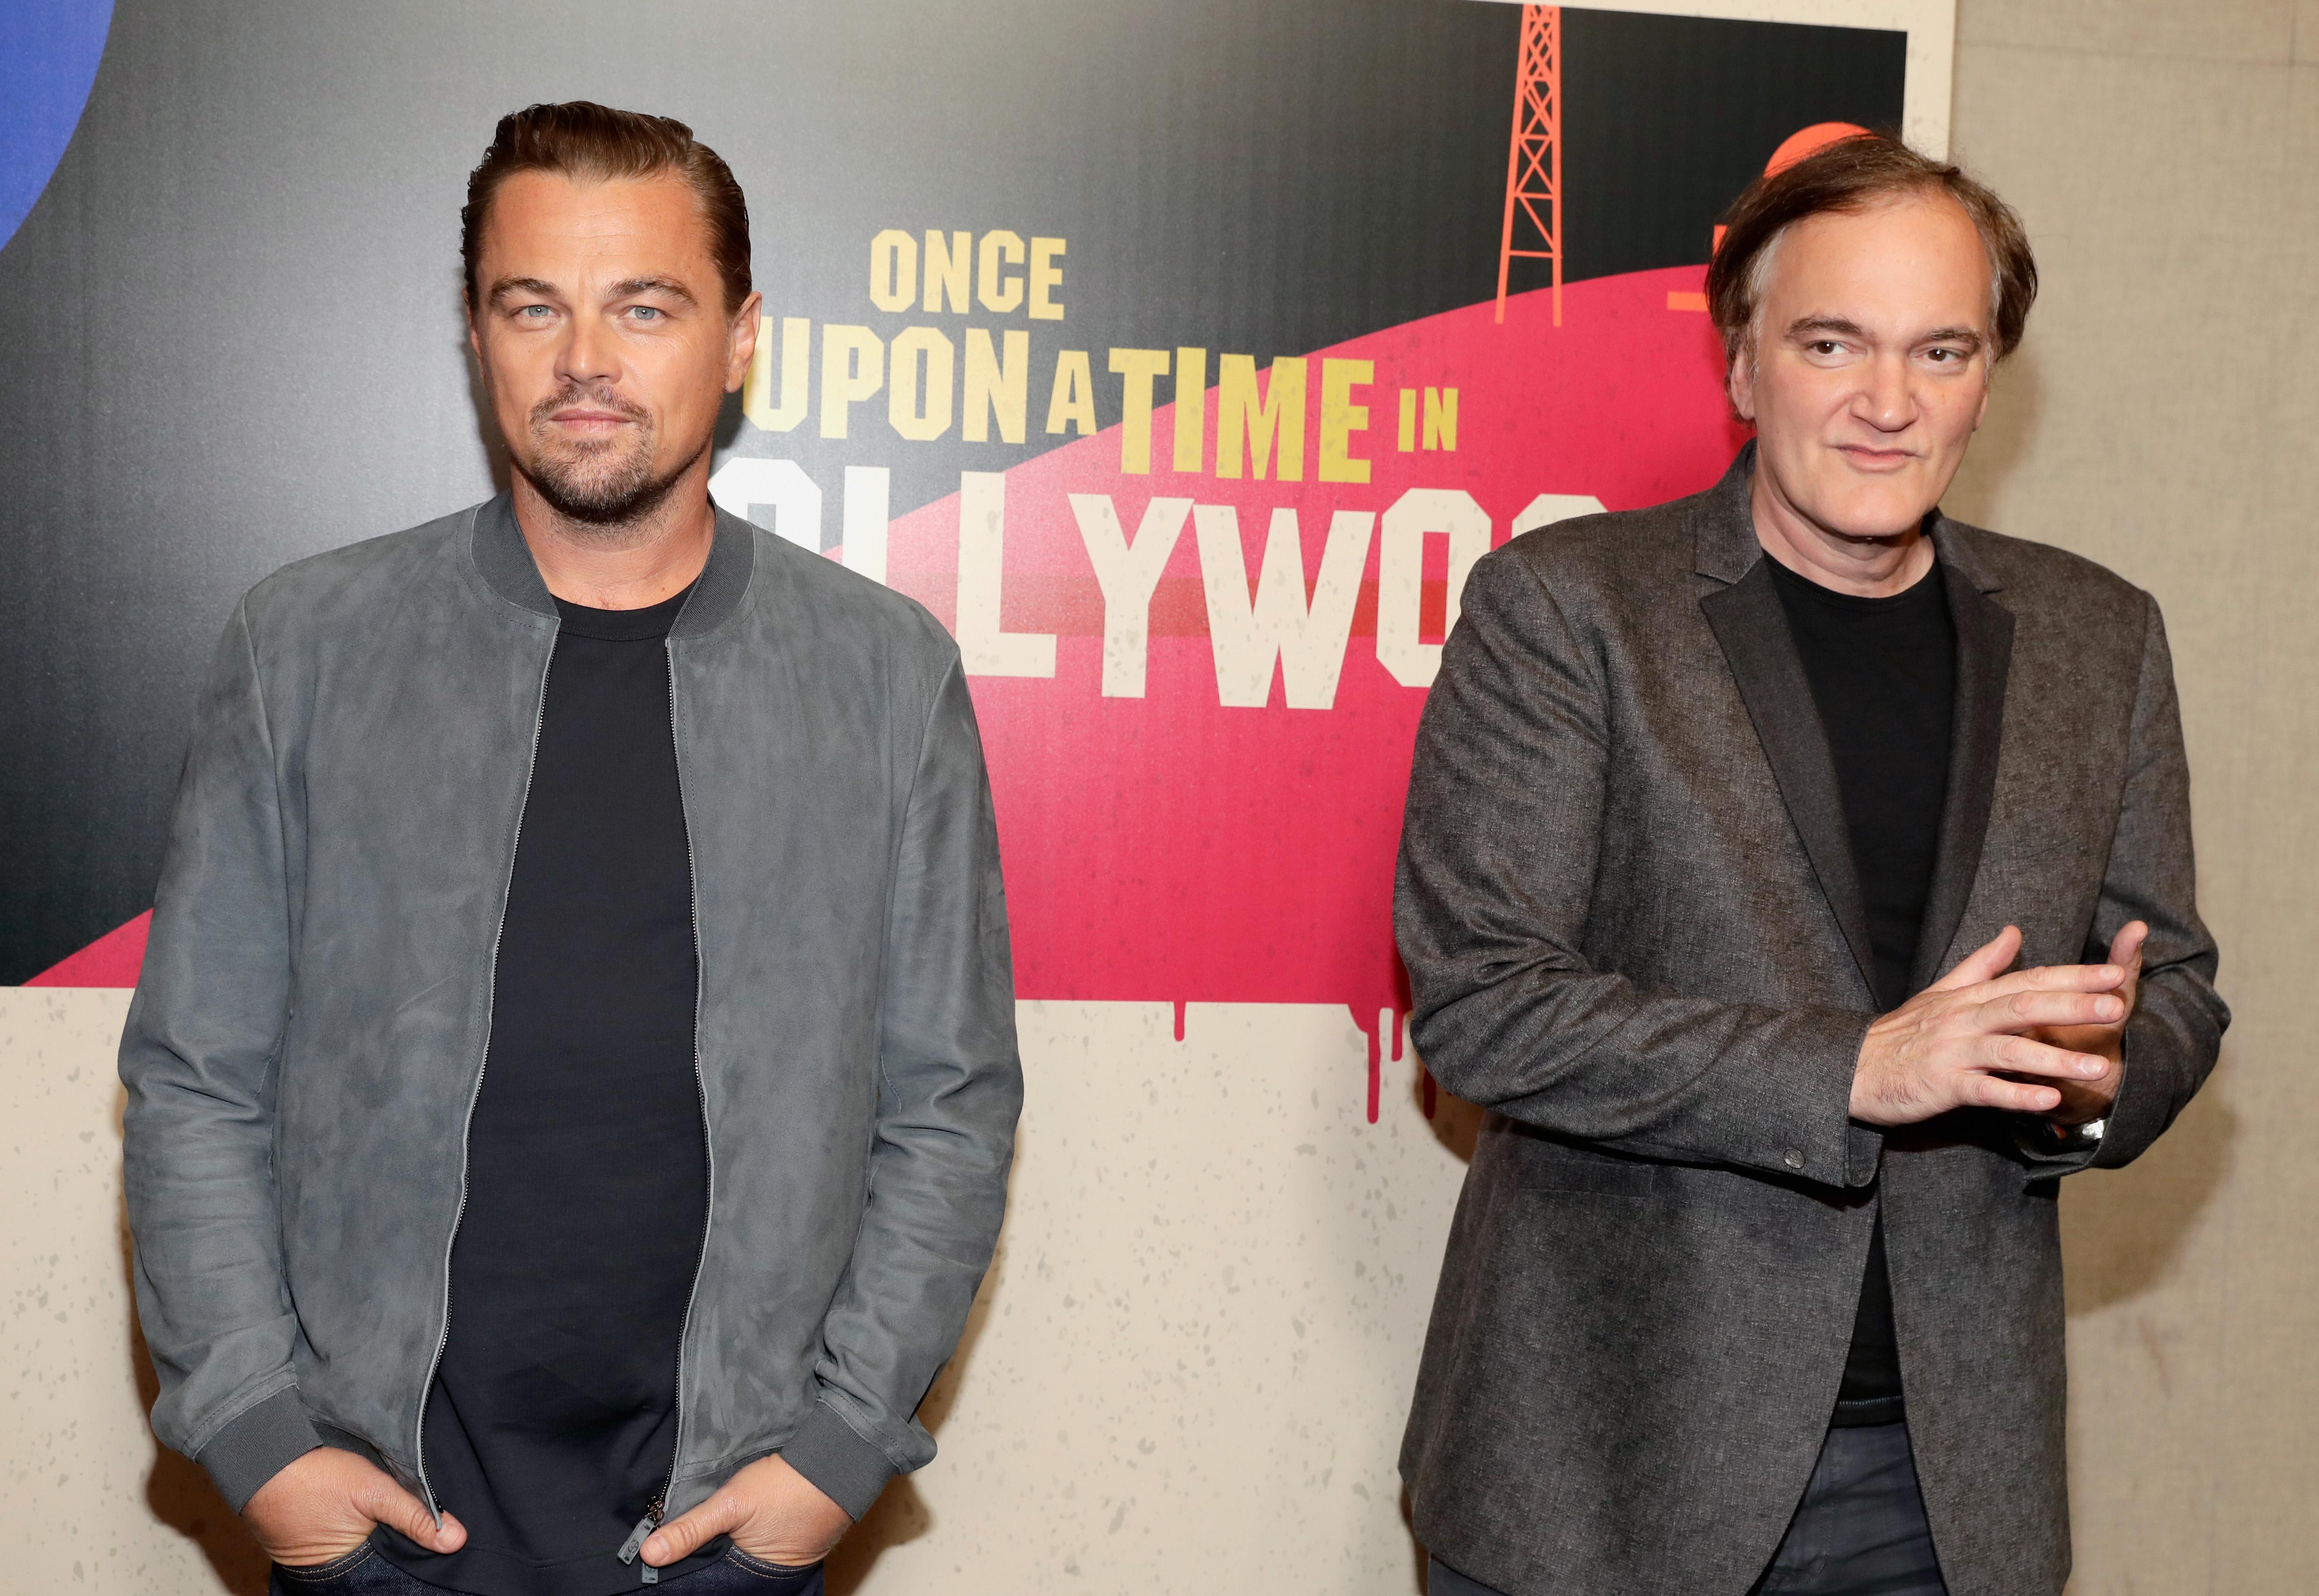 Quentin Tarantino, Leonardo DiCaprio Tease 'Once Upon a Time in Hollywood'